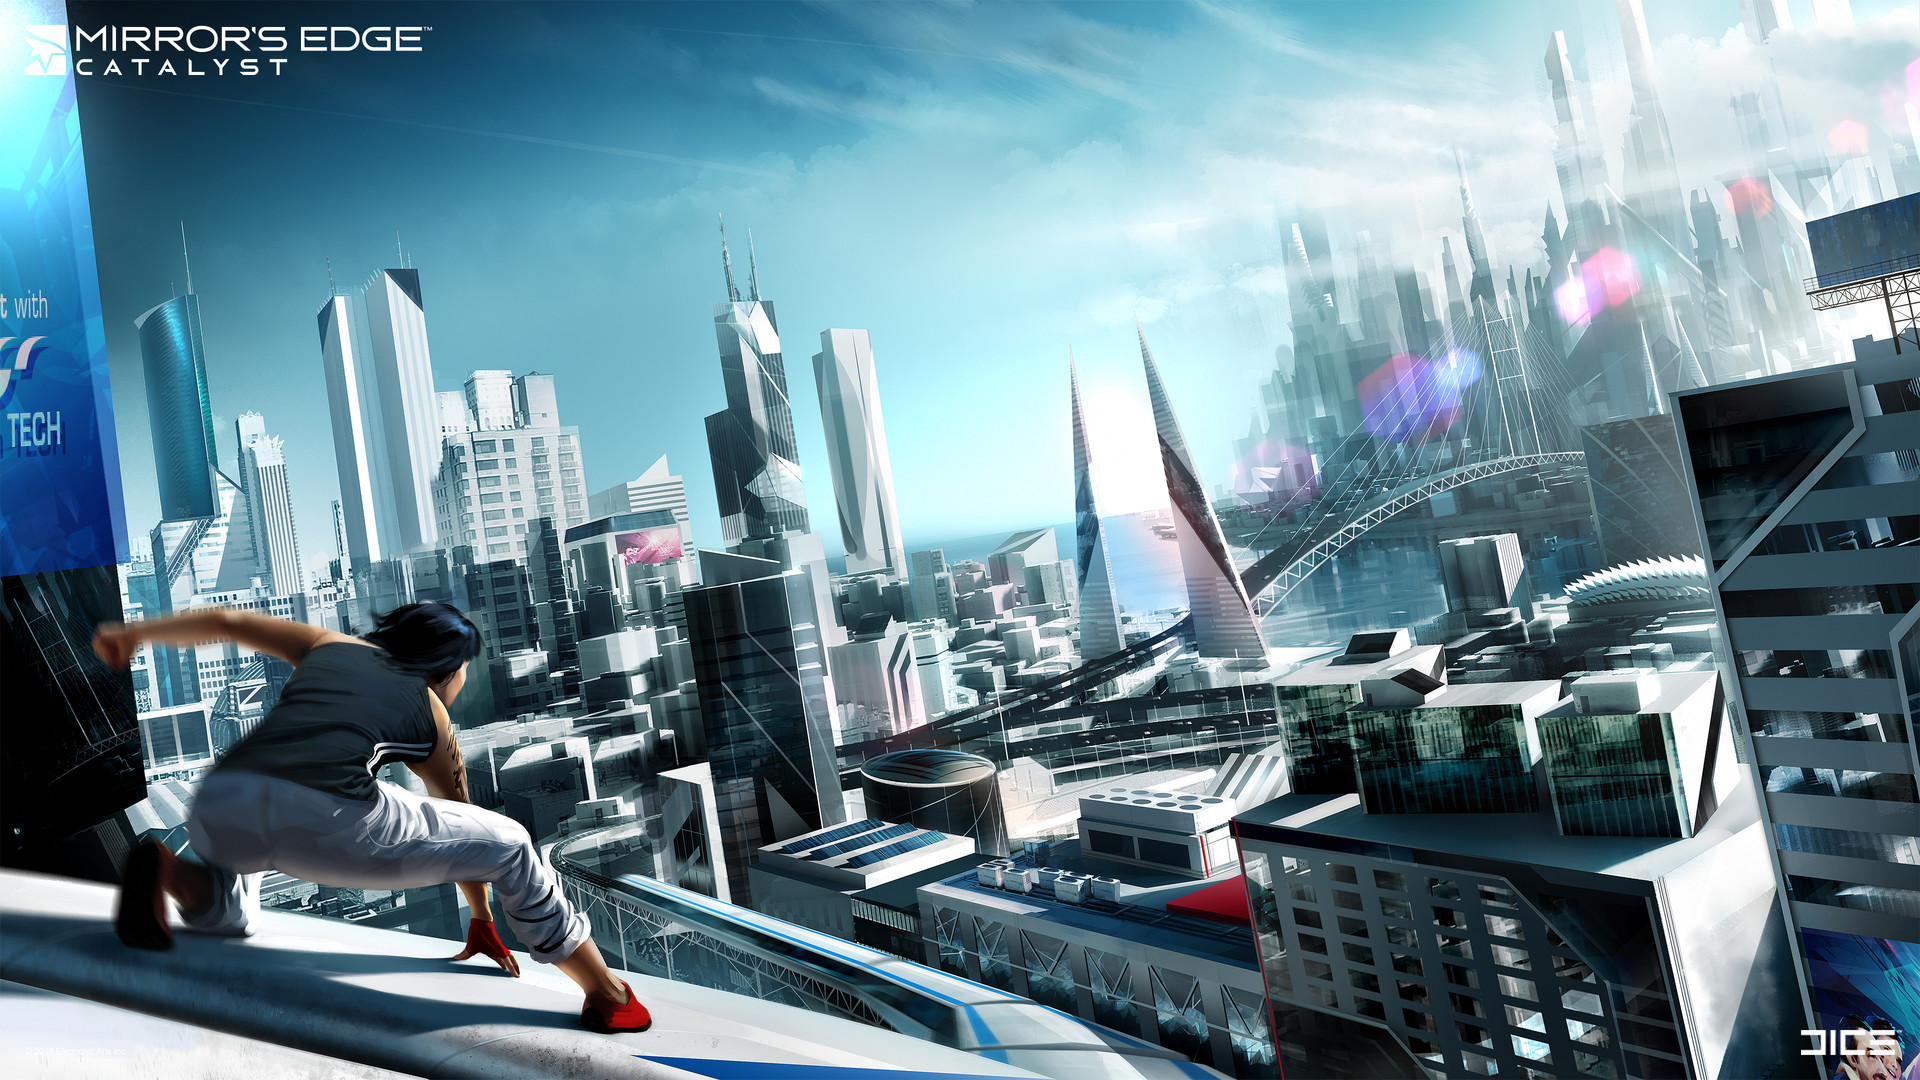 Art of Mirror's Edge Catalyst